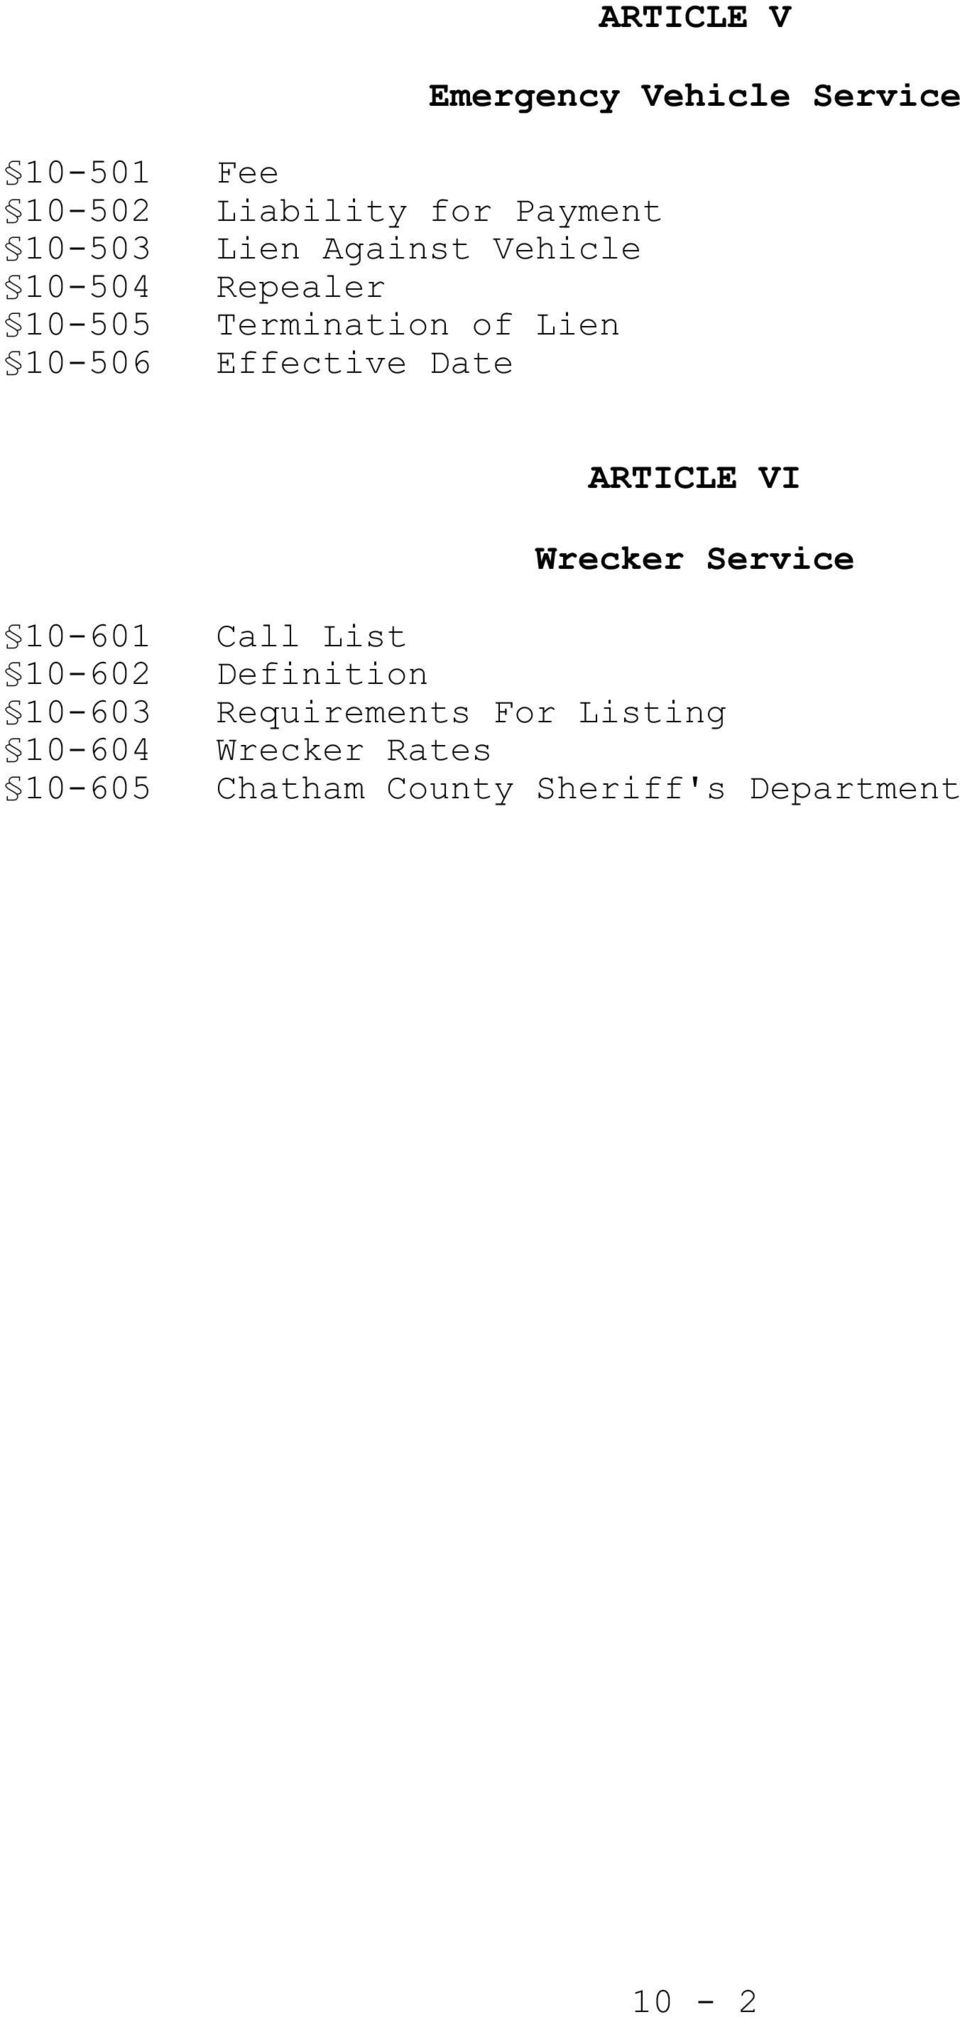 Vehicle Service ARTICLE VI Wrecker Service 10-601 Call List 10-602 Definition